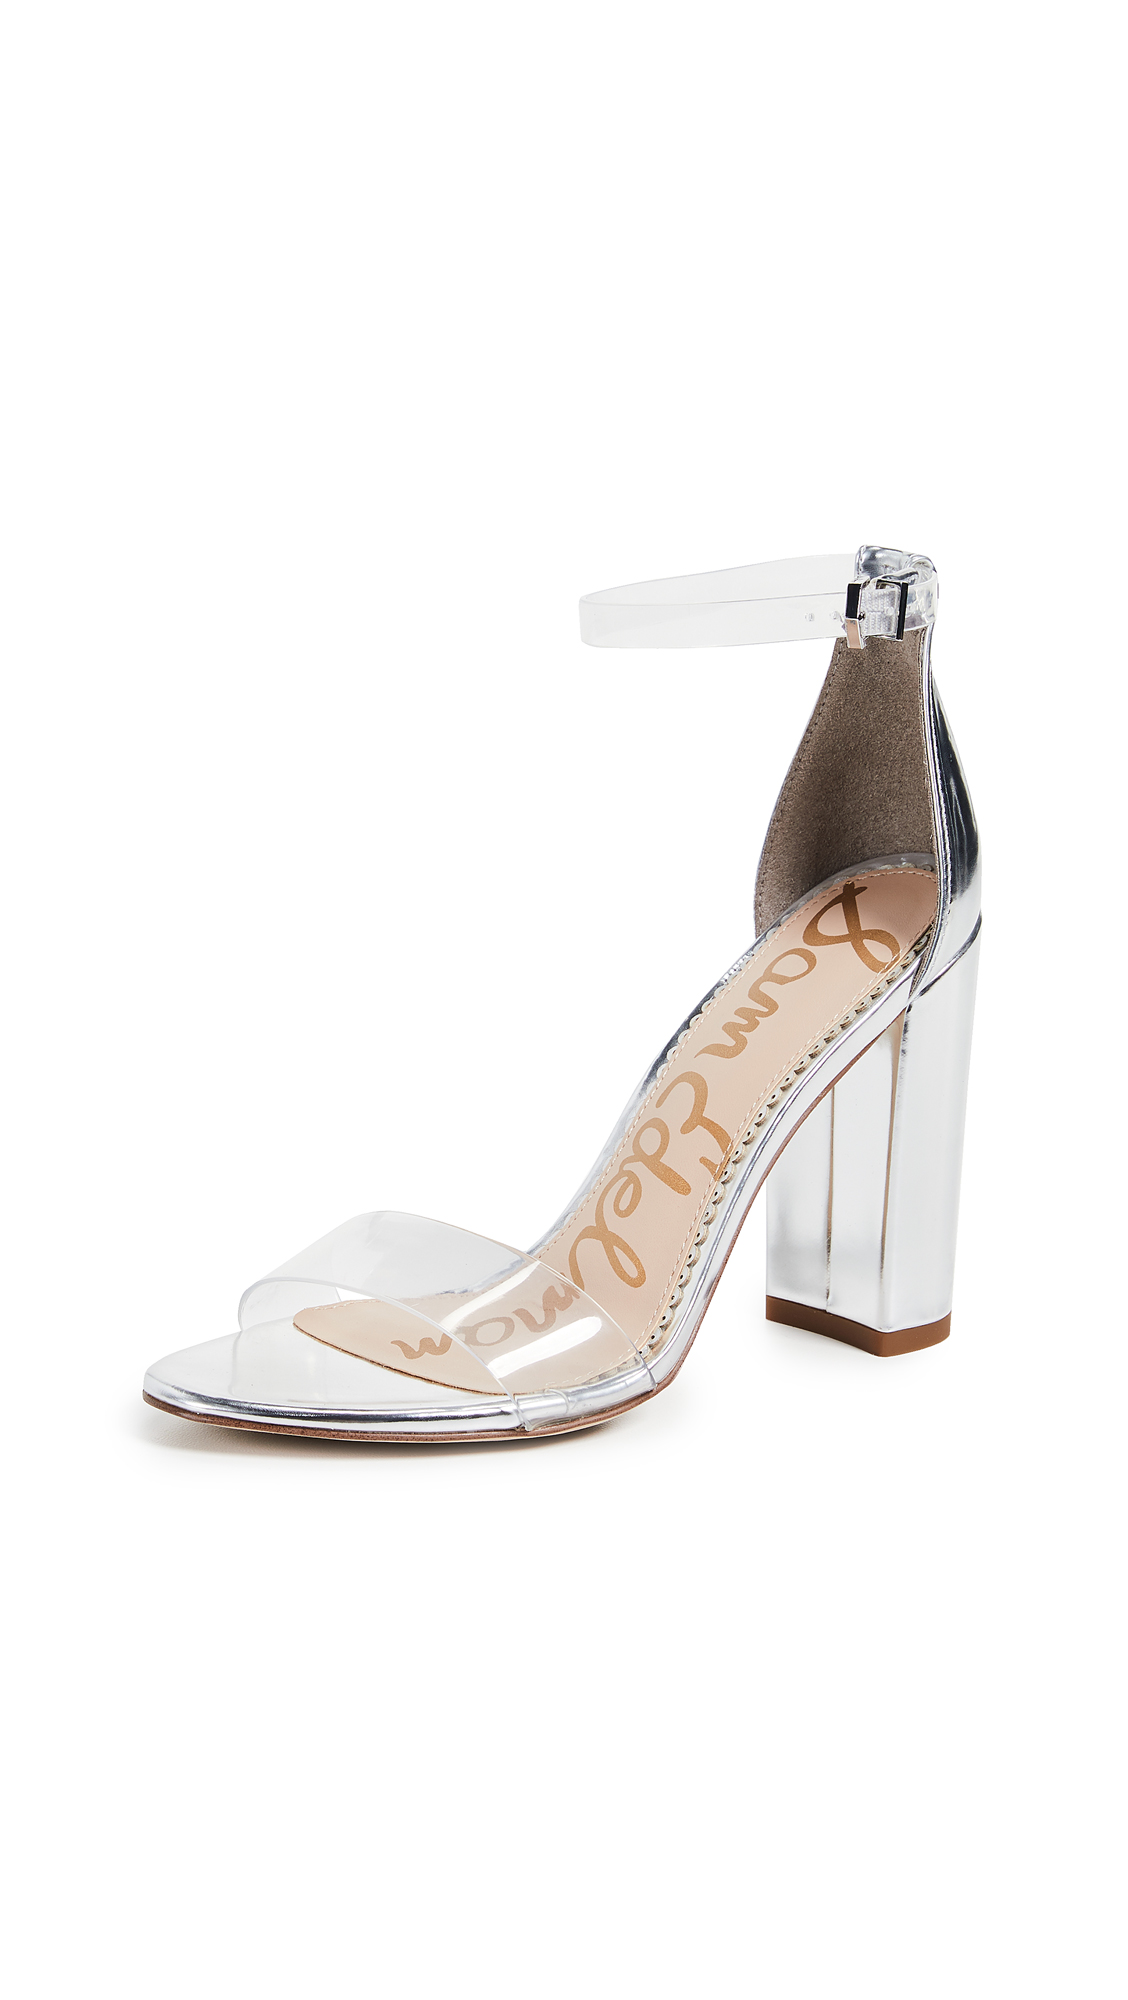 Sam Edelman Yaro Sandals - Clear/Soft Silver